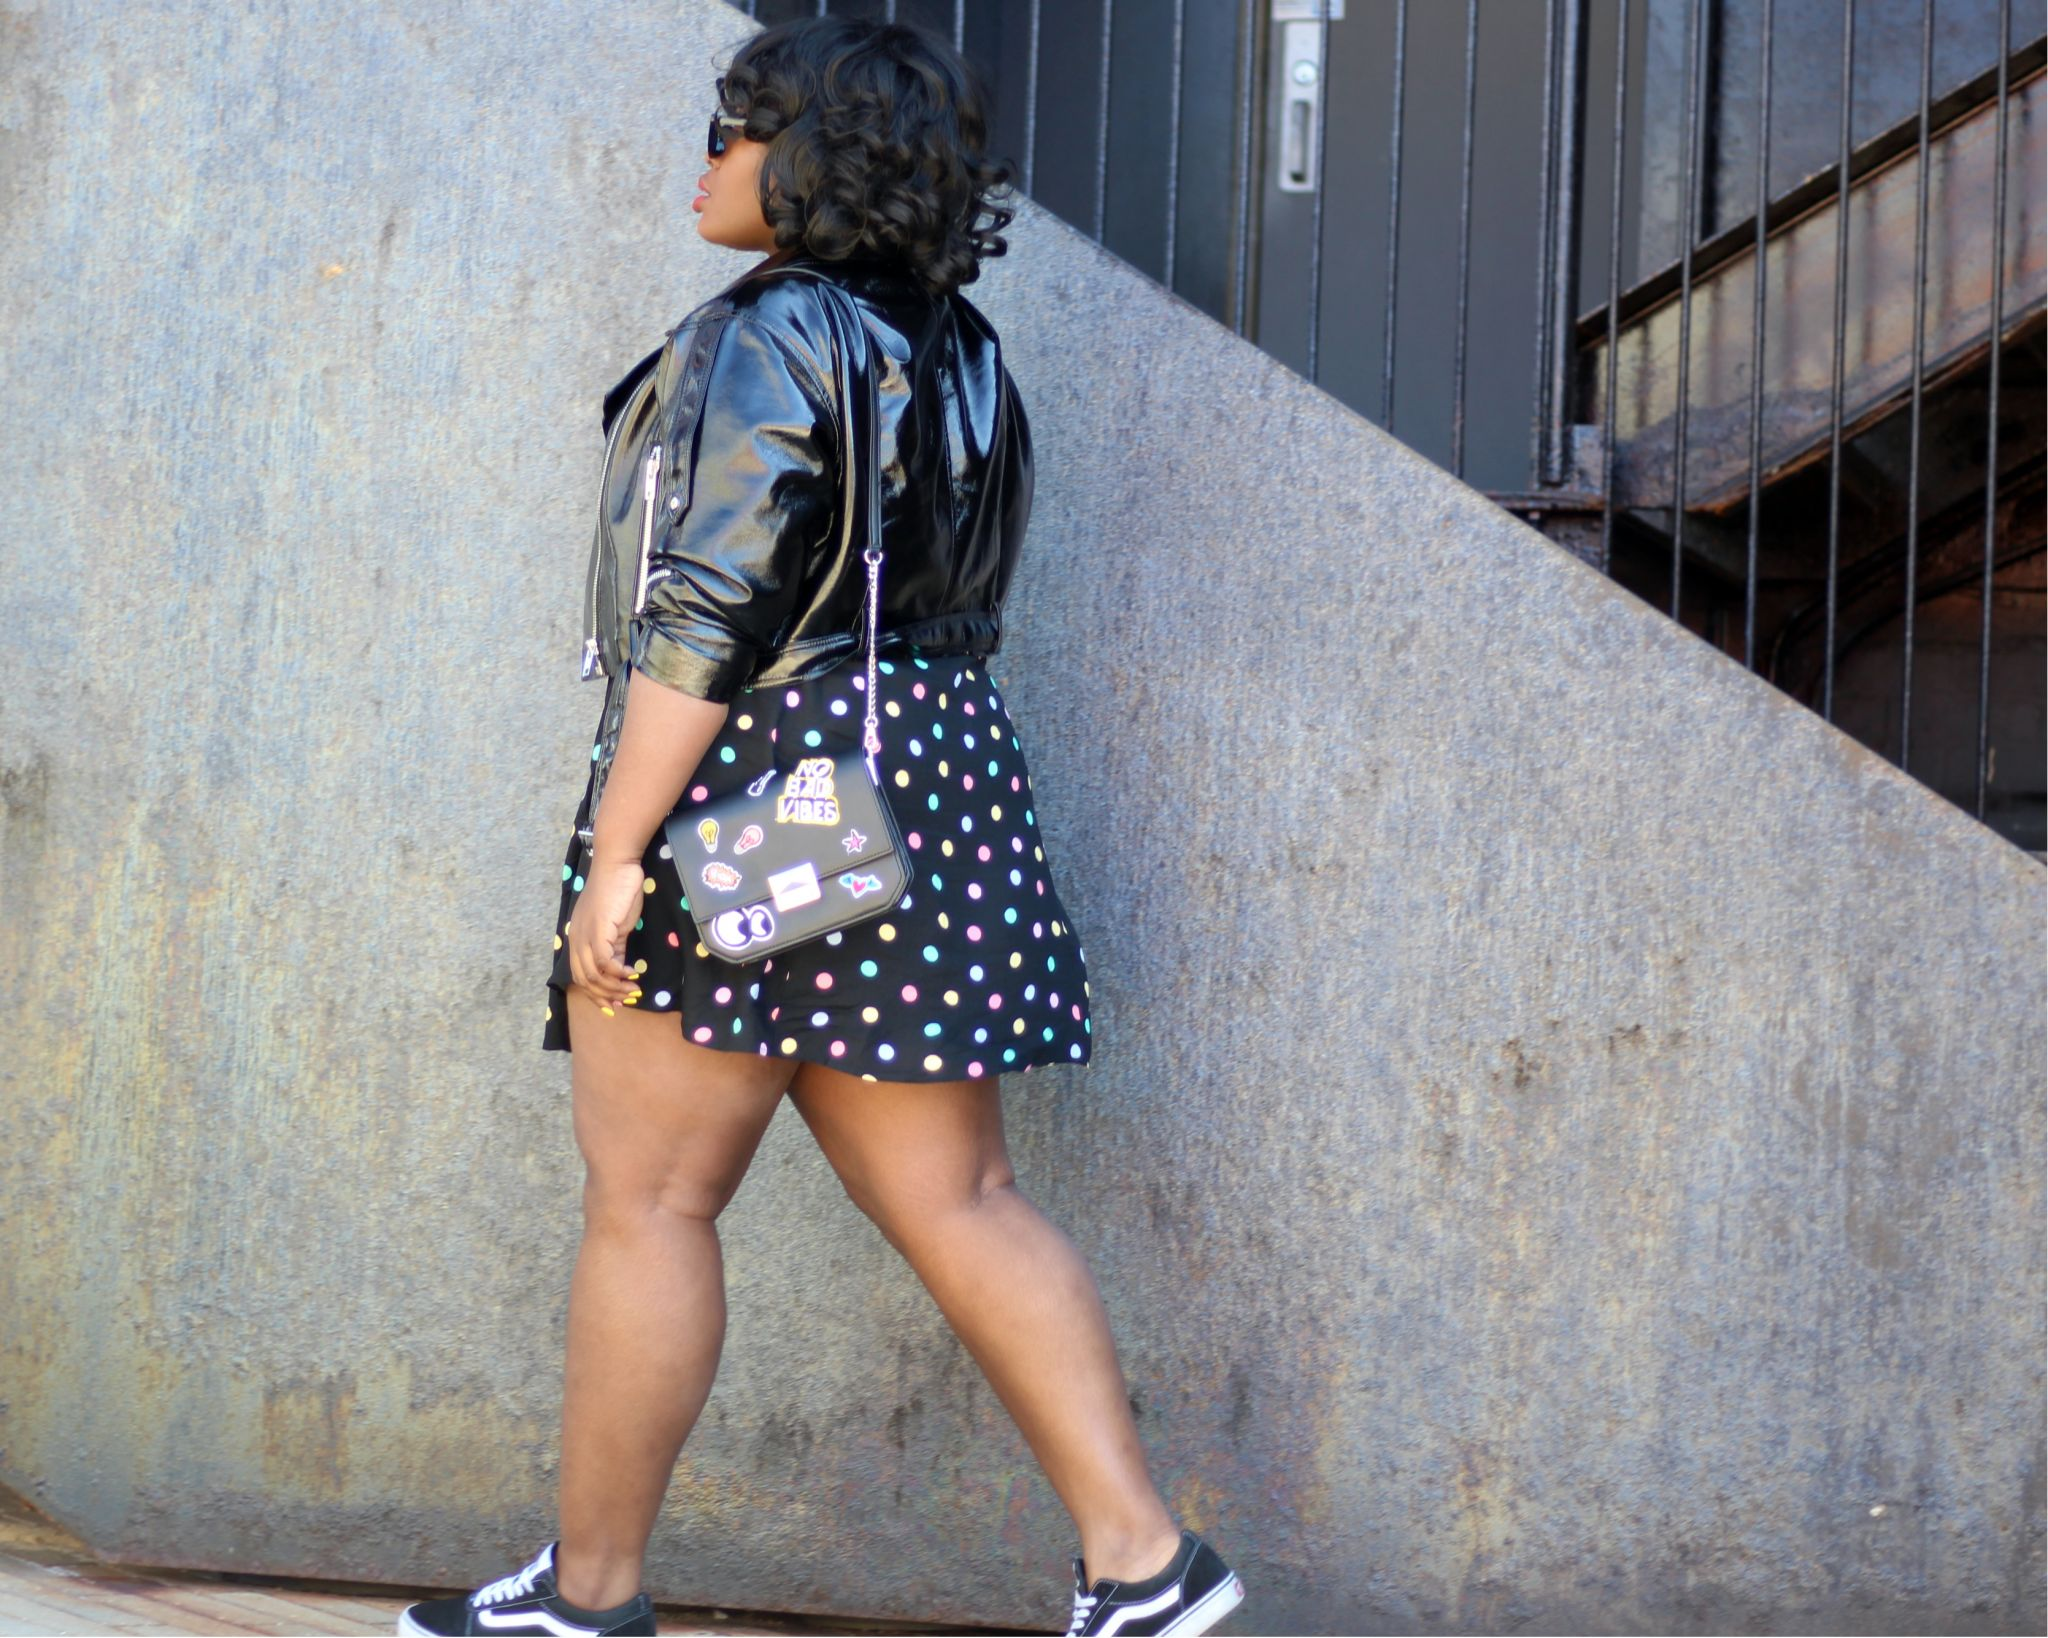 Master The Music Festival Concert Outfit With These Tips